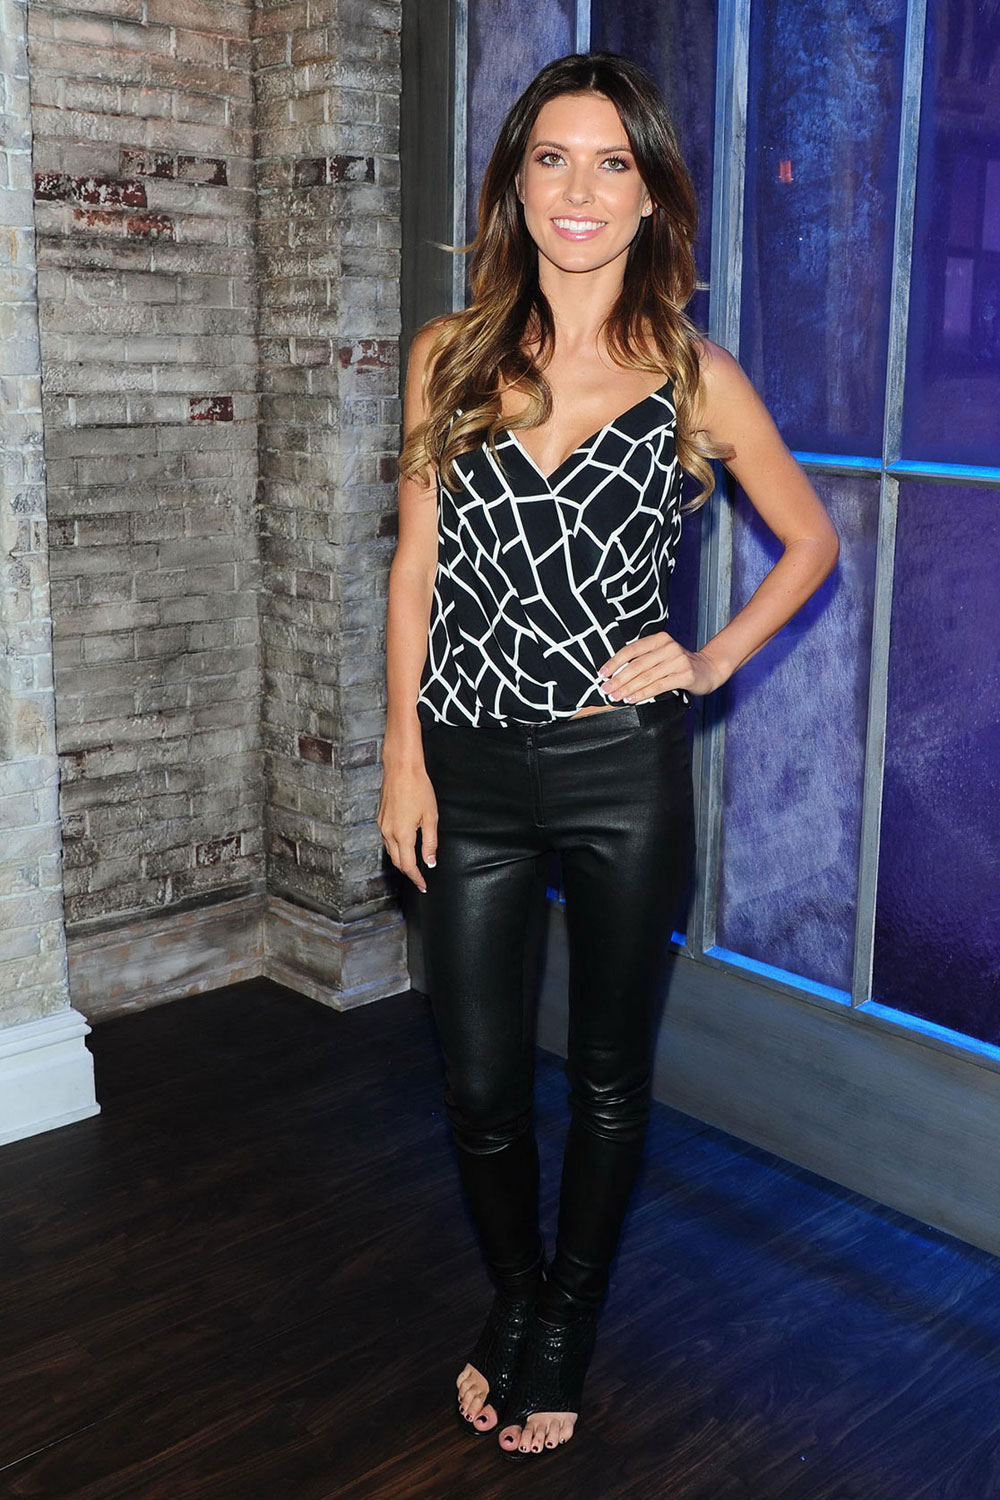 Audrina Patridge attends VH1 Big Morning Buzz